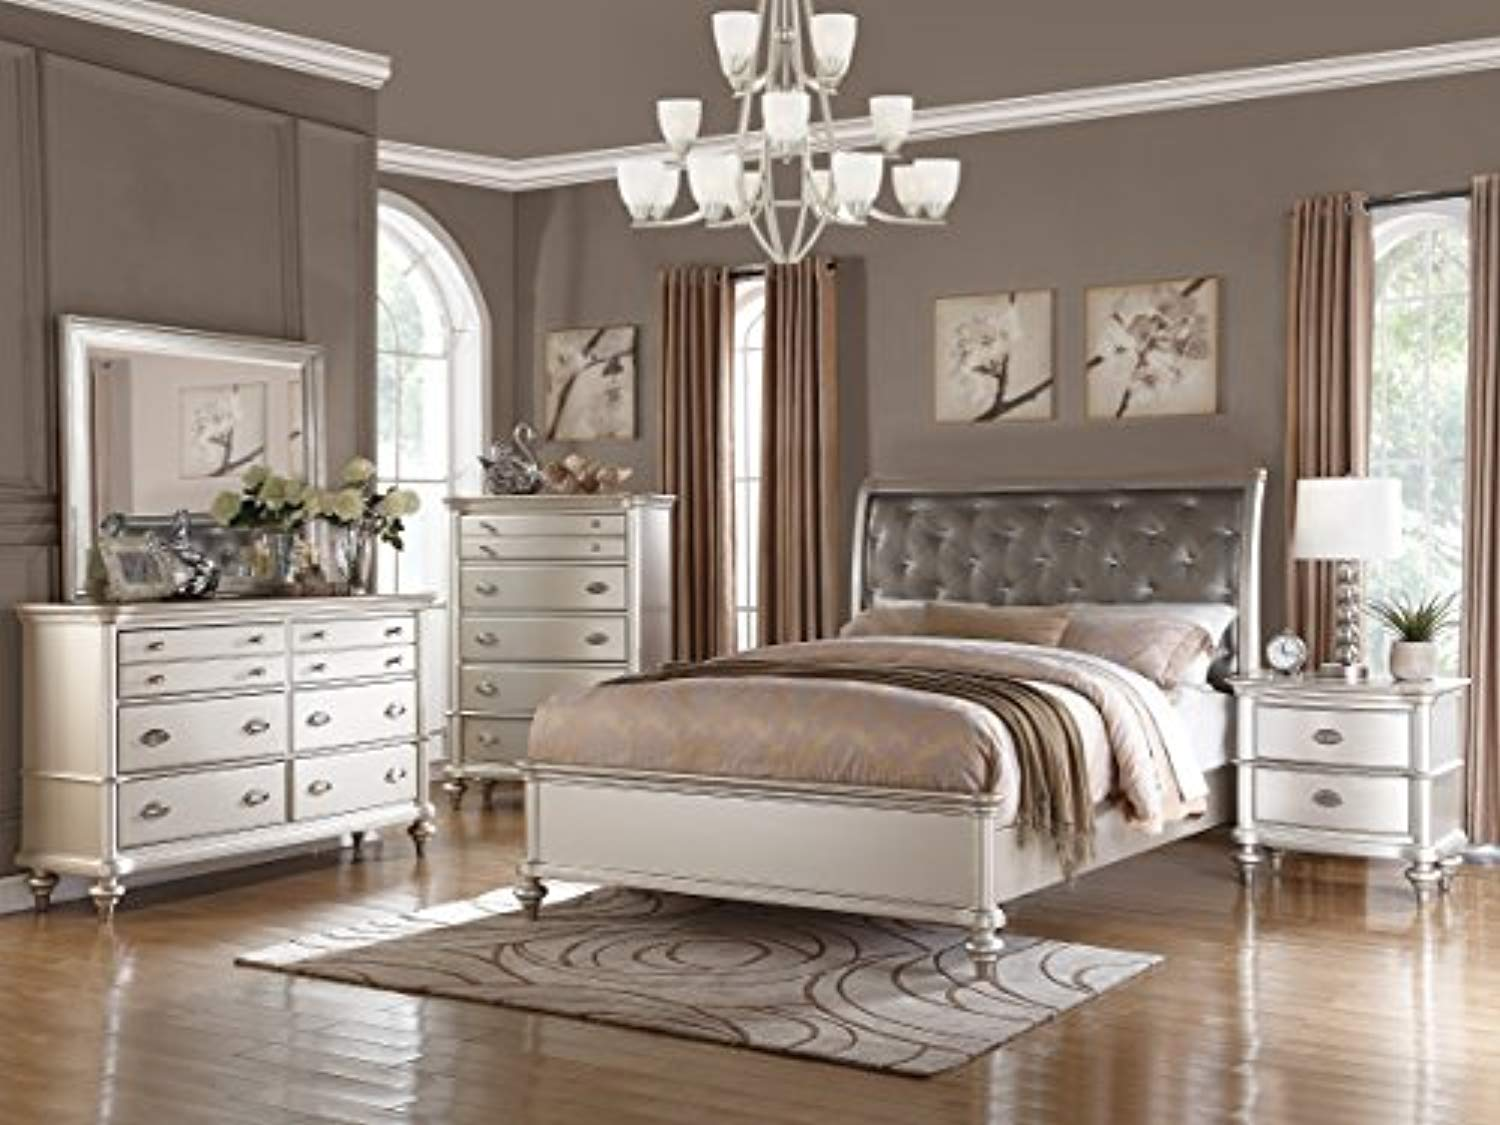 Picture of: Silver Magical Bedroom Furniture Accent Tufted Hb Eastern King Size Be Ek Chic Home